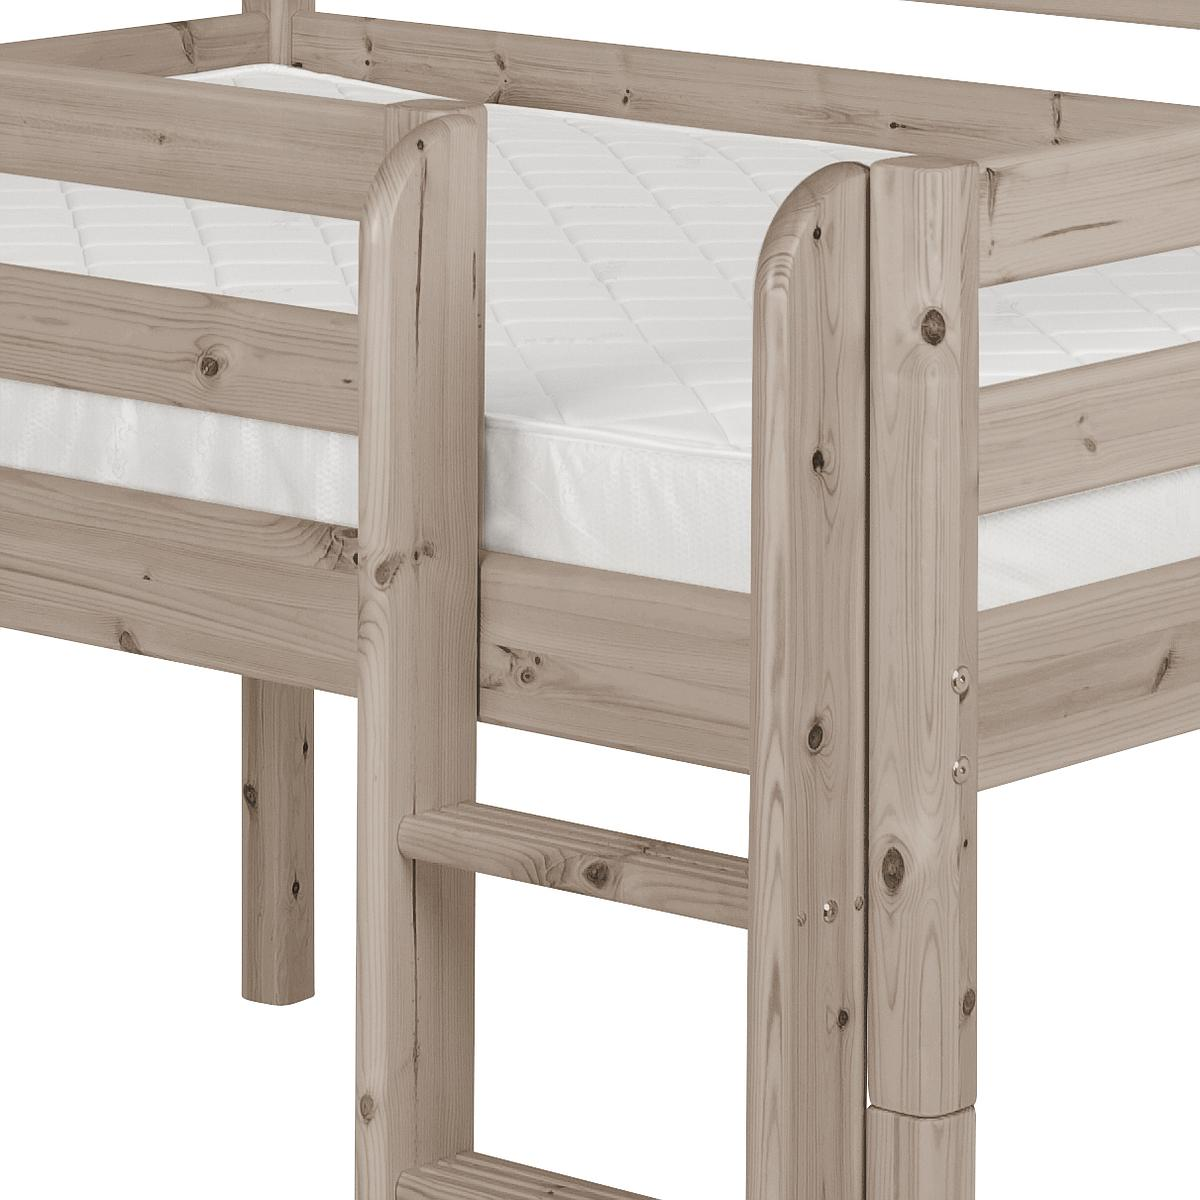 Cama media alta 90x200 CLASSIC Flexa escalera recta terra